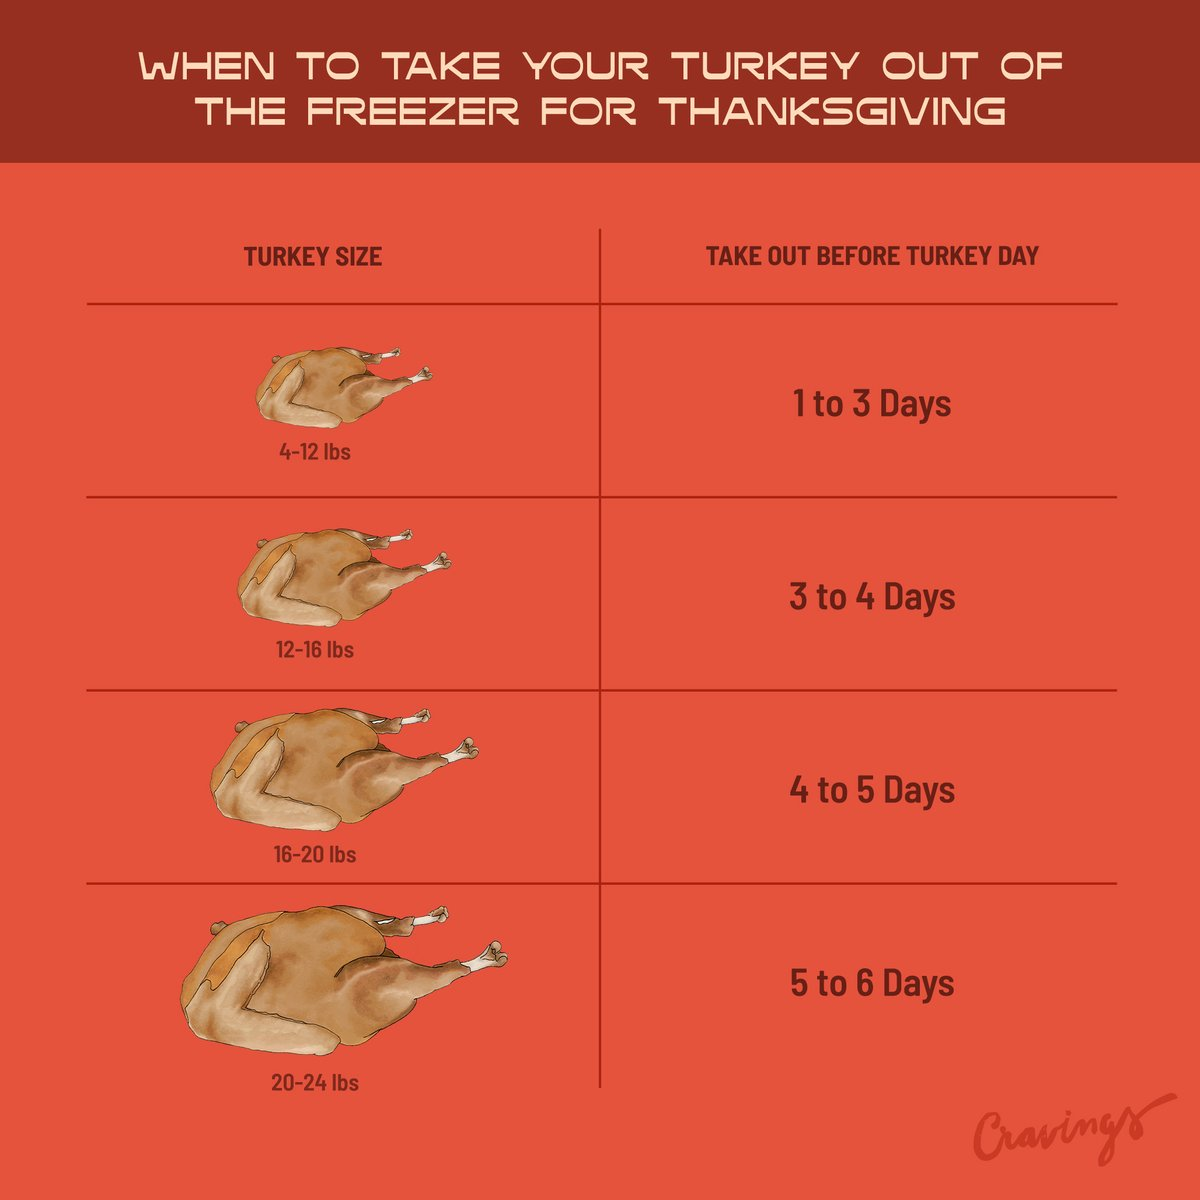 Set your reminders! We're here to make this Thanksgiving as easy as possible with our first ever Tipsgiving week. We'll be sharing tips, tricks, & hacks for Thanksgiving —kicking it off with turkey & gravy. Everything you need to make the juiciest turkey👉